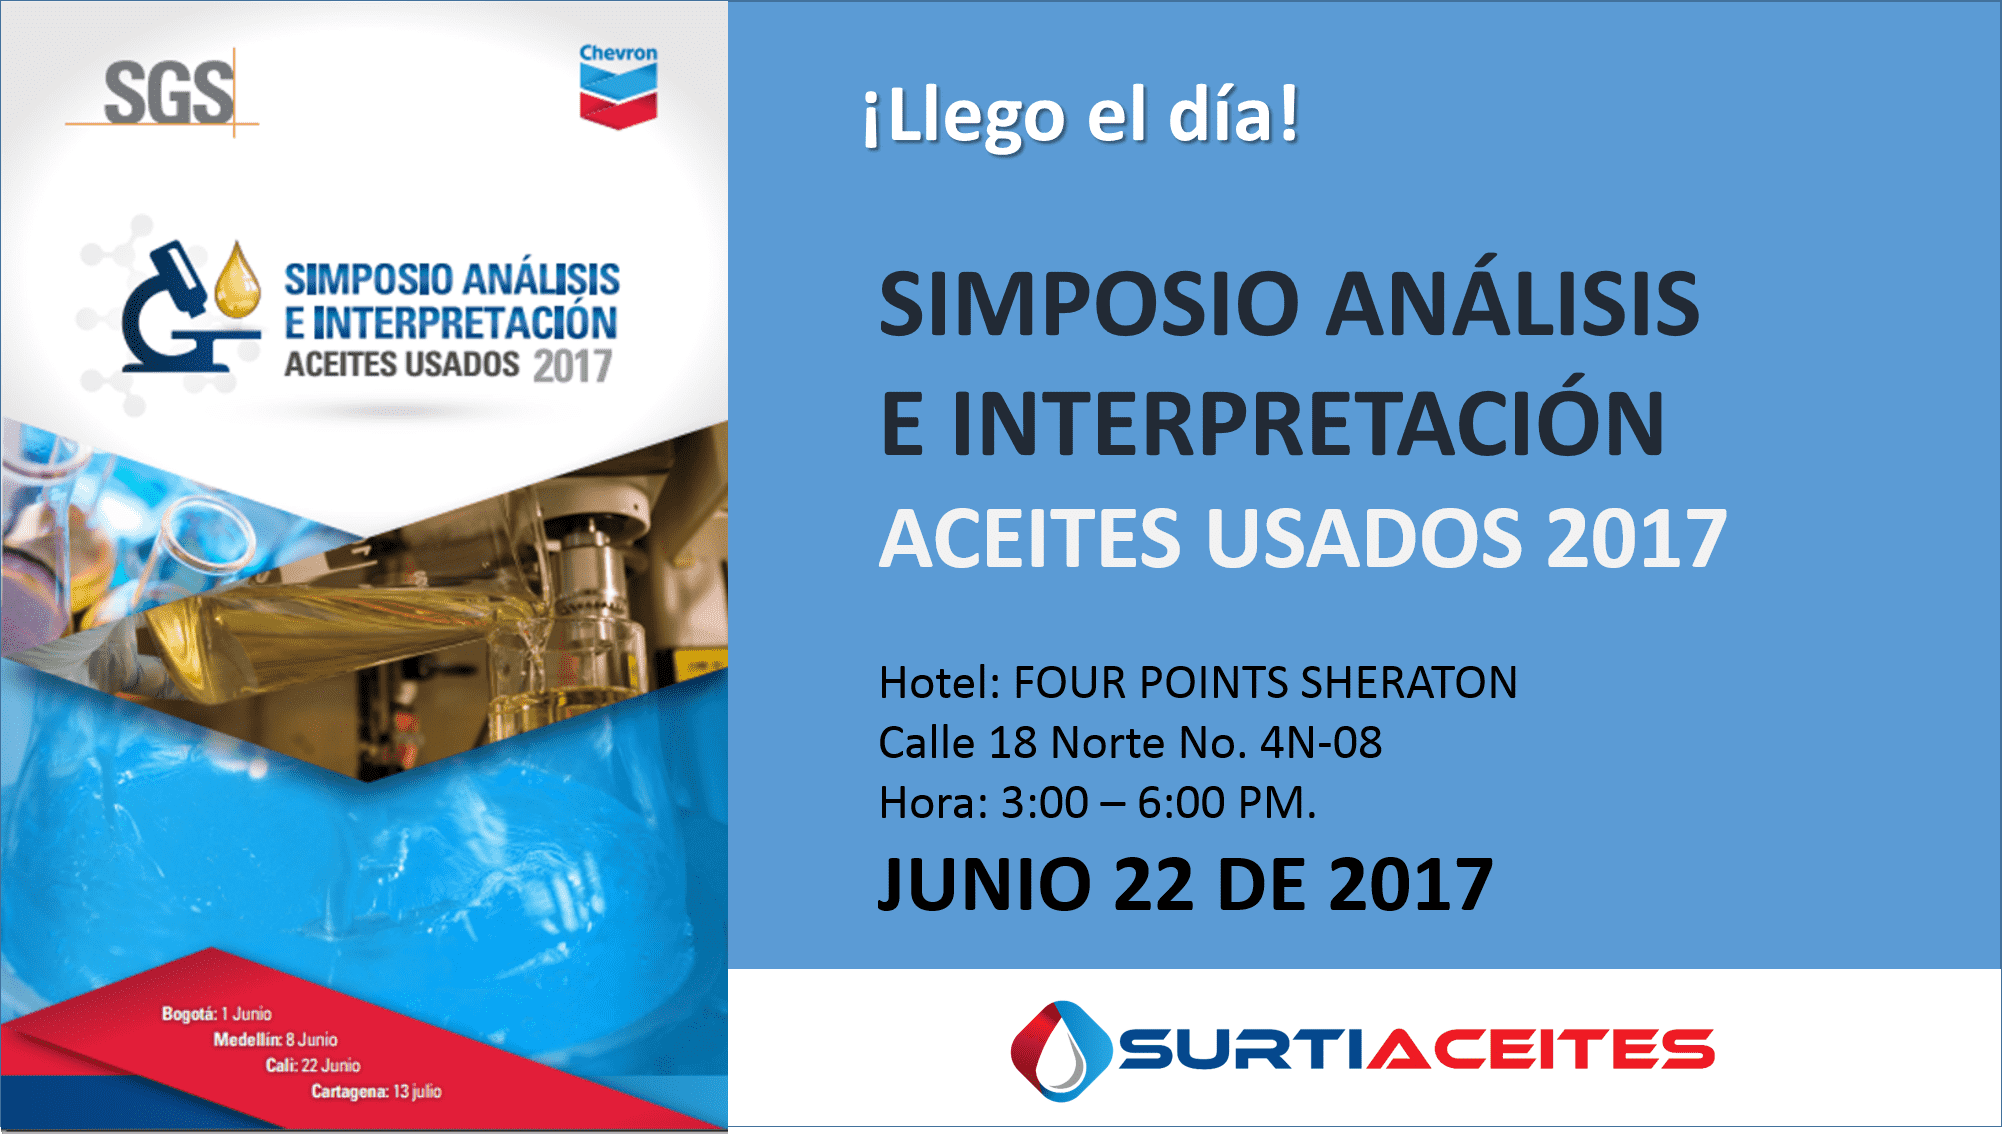 invitacionsimposio2017